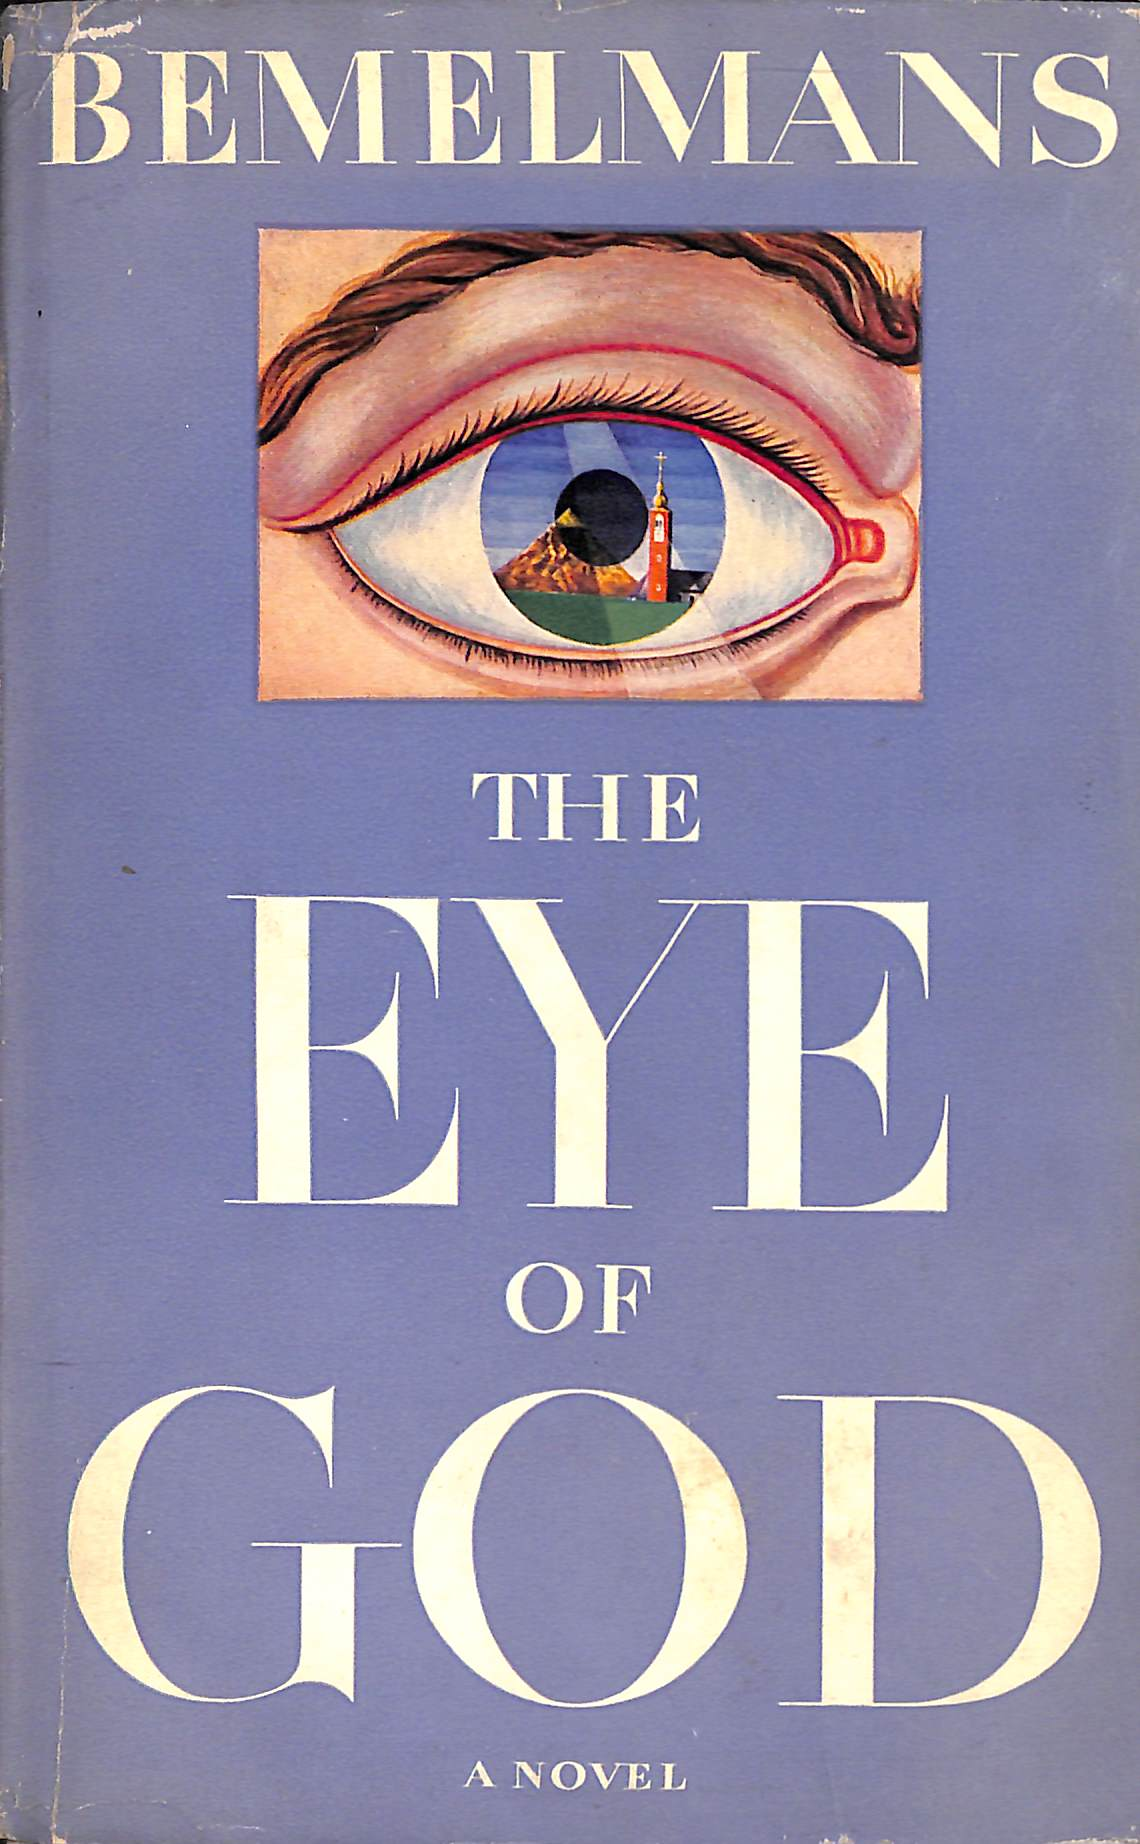 'The Eye of God' by Ludwig Bemelmans (Inscribed to Elsa Schiaparelli)